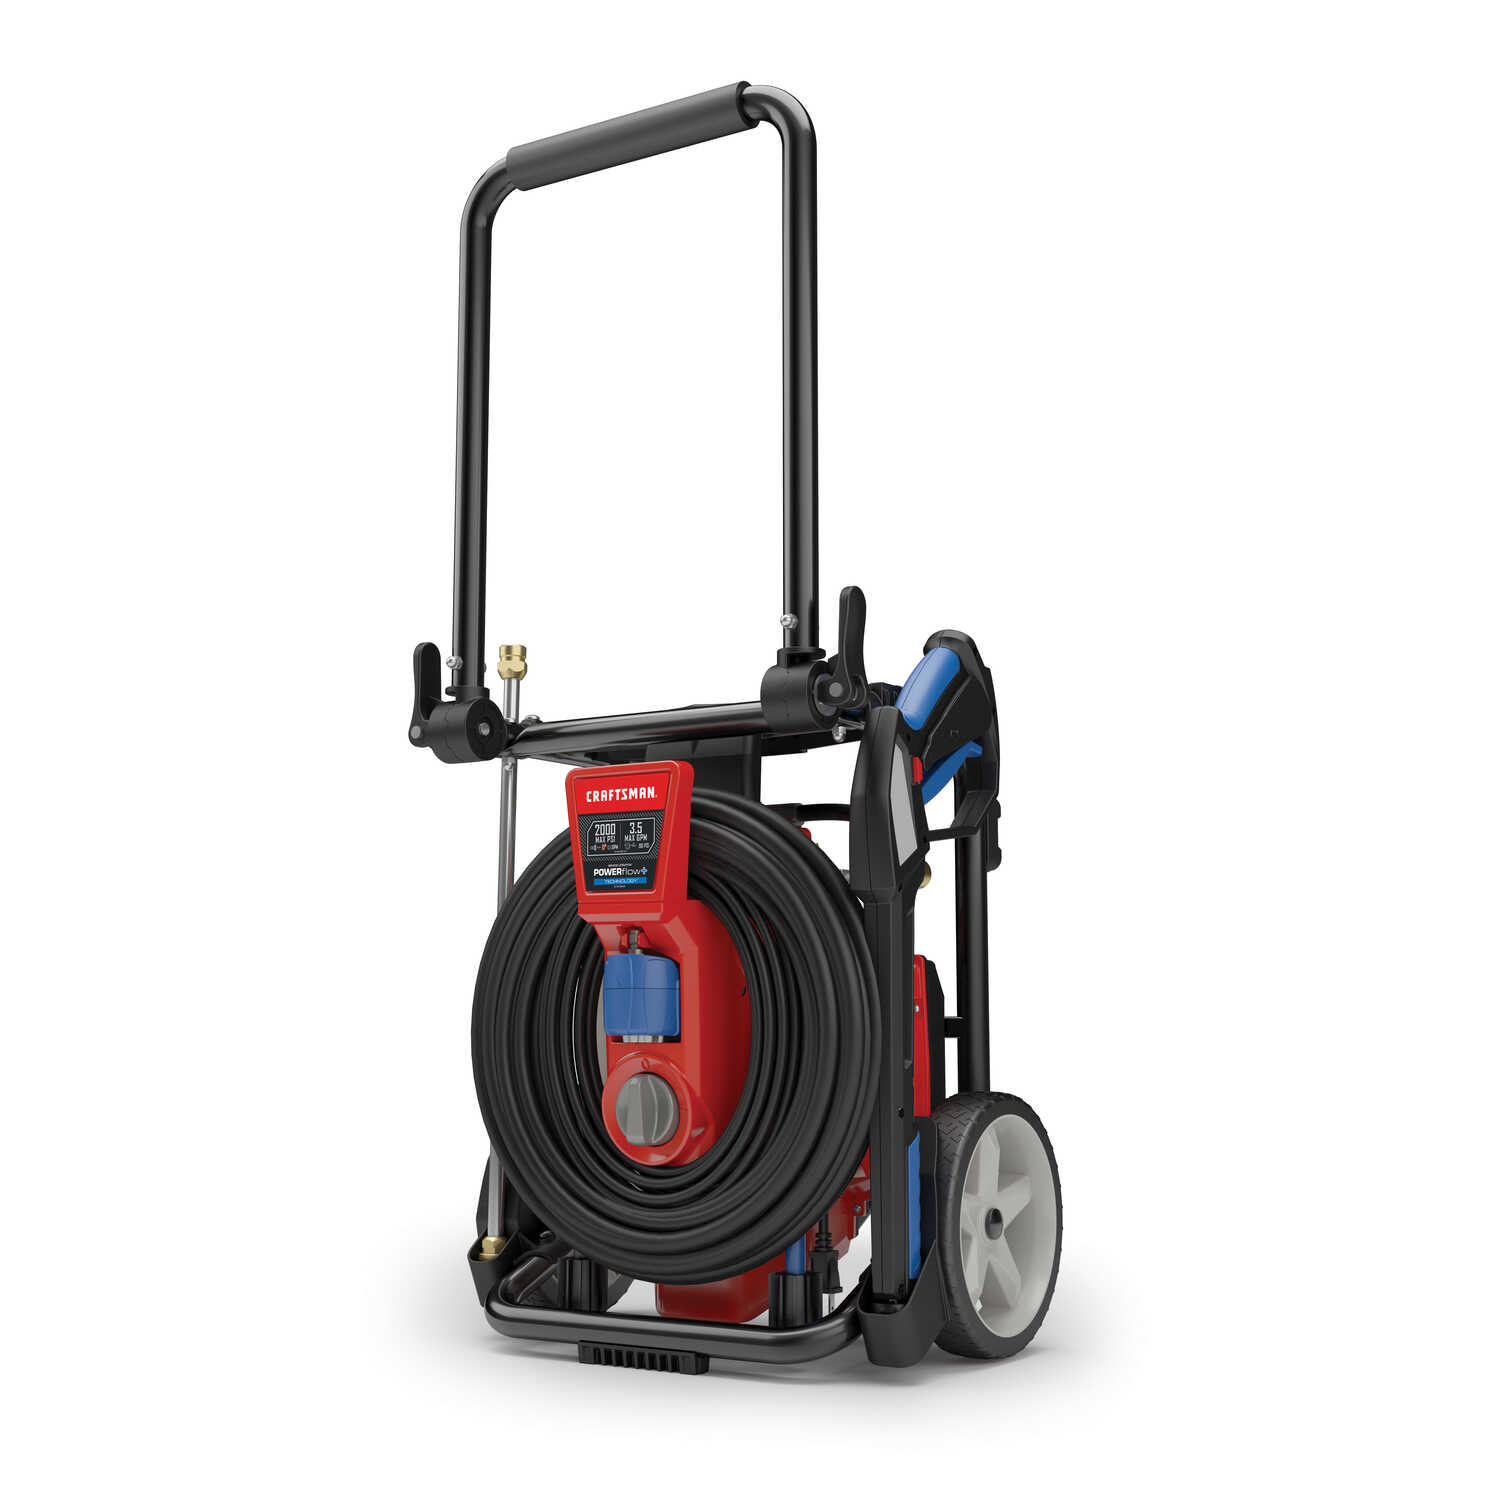 Craftsman  Briggs & Stratton  2000 psi Electric  3.5 gpm Pressure Washer